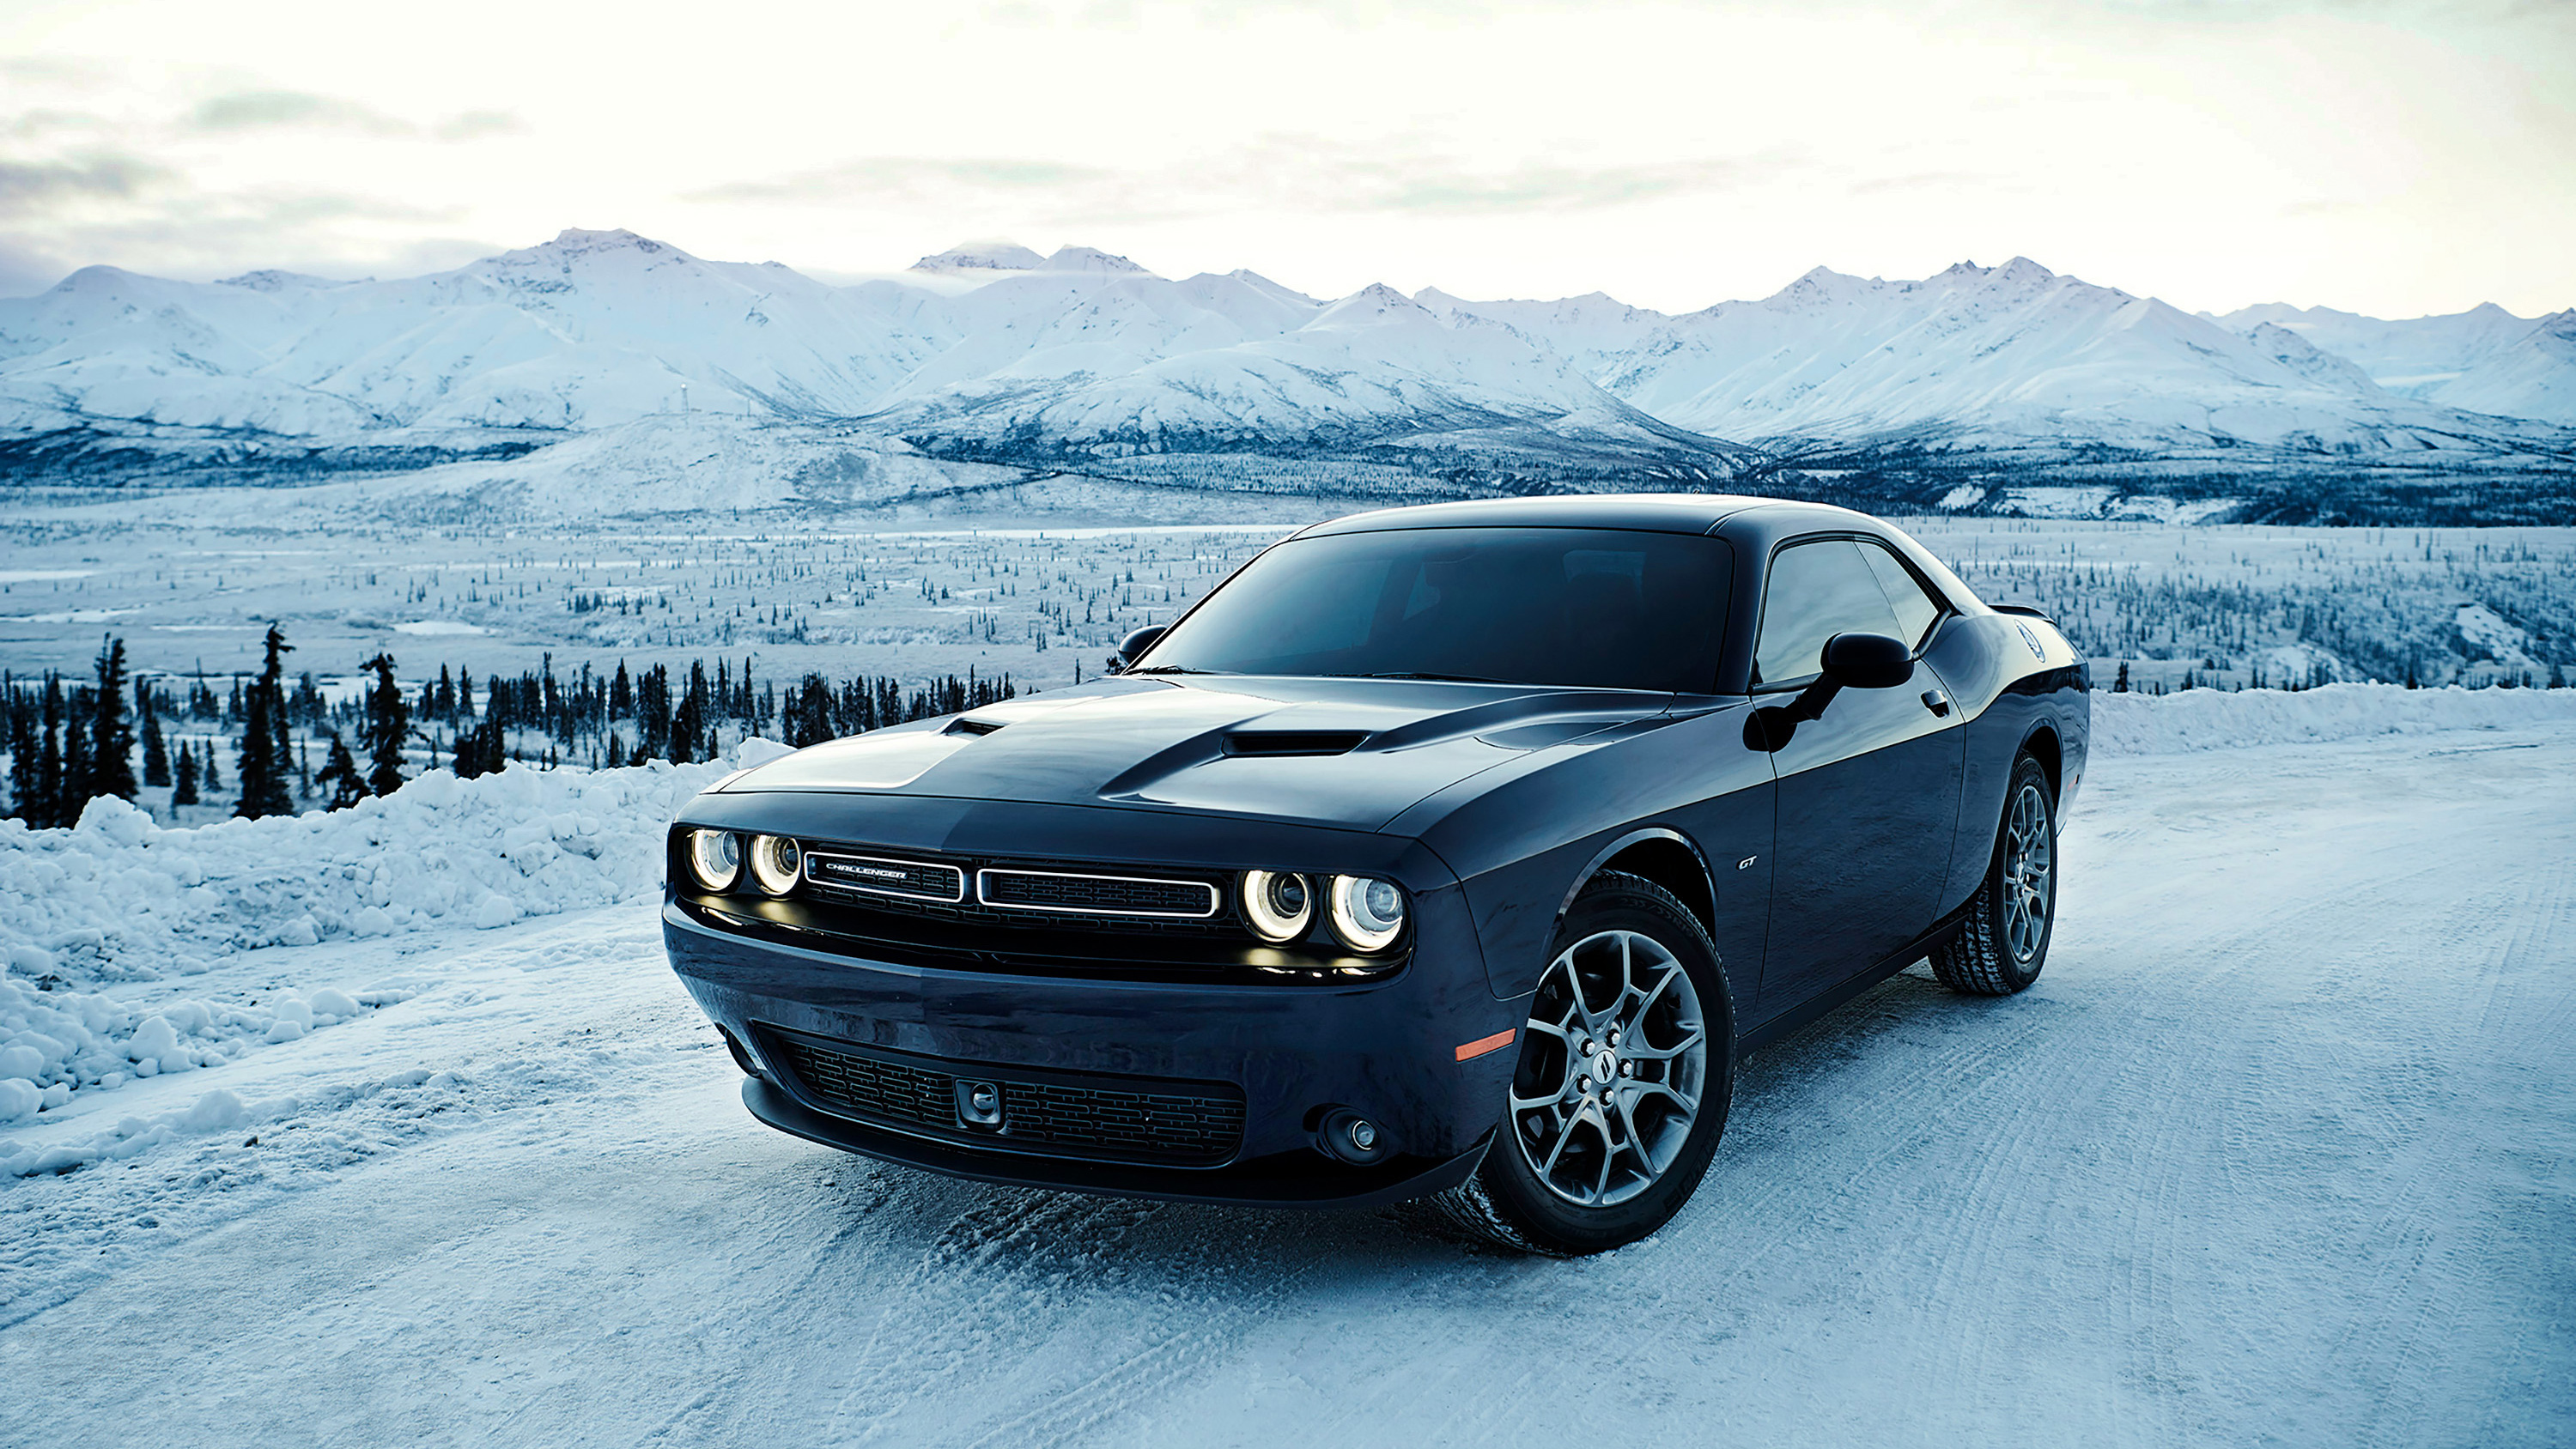 2017 dodge challenger gt awd wallpaper hd car wallpapers id 8017. Black Bedroom Furniture Sets. Home Design Ideas